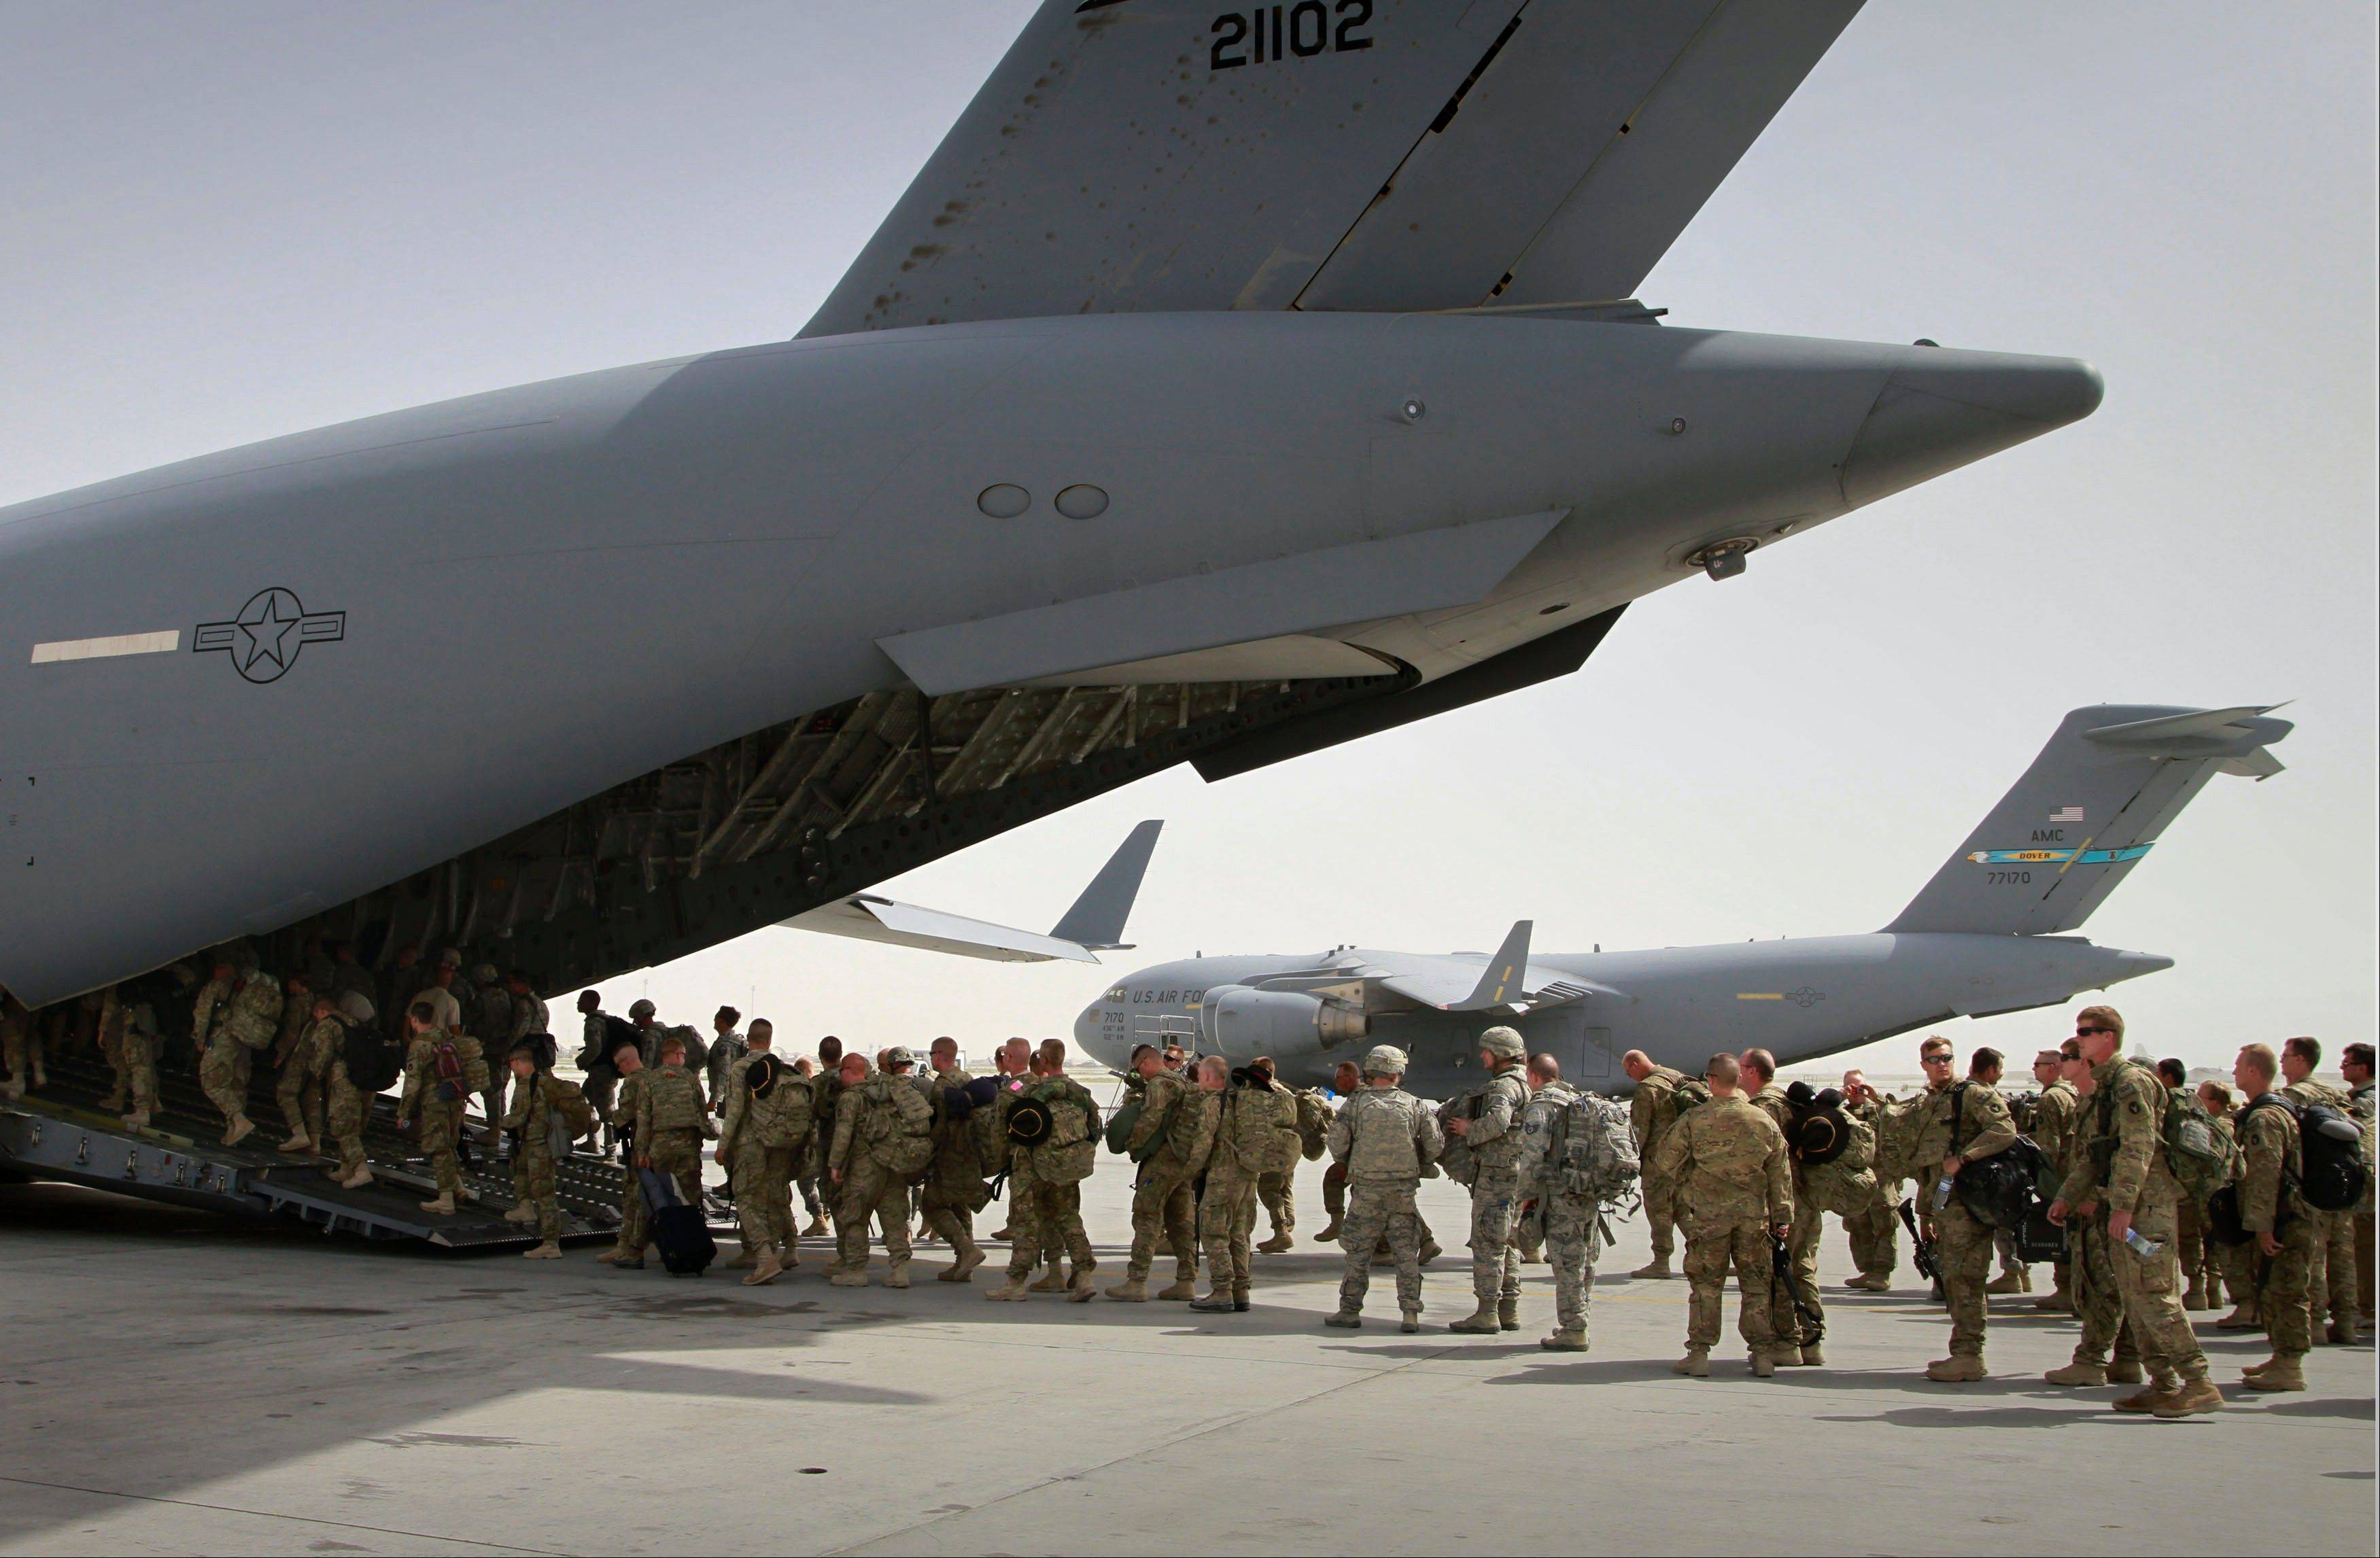 U.S. soldiers board a U.S. military plane, as they leave Afghanistan, at the U.S. base in Bagram north of Kabul, in 2011. Suicides in the U.S. military surged to a record 349 last year, far exceeding American combat deaths in Afghanistan.